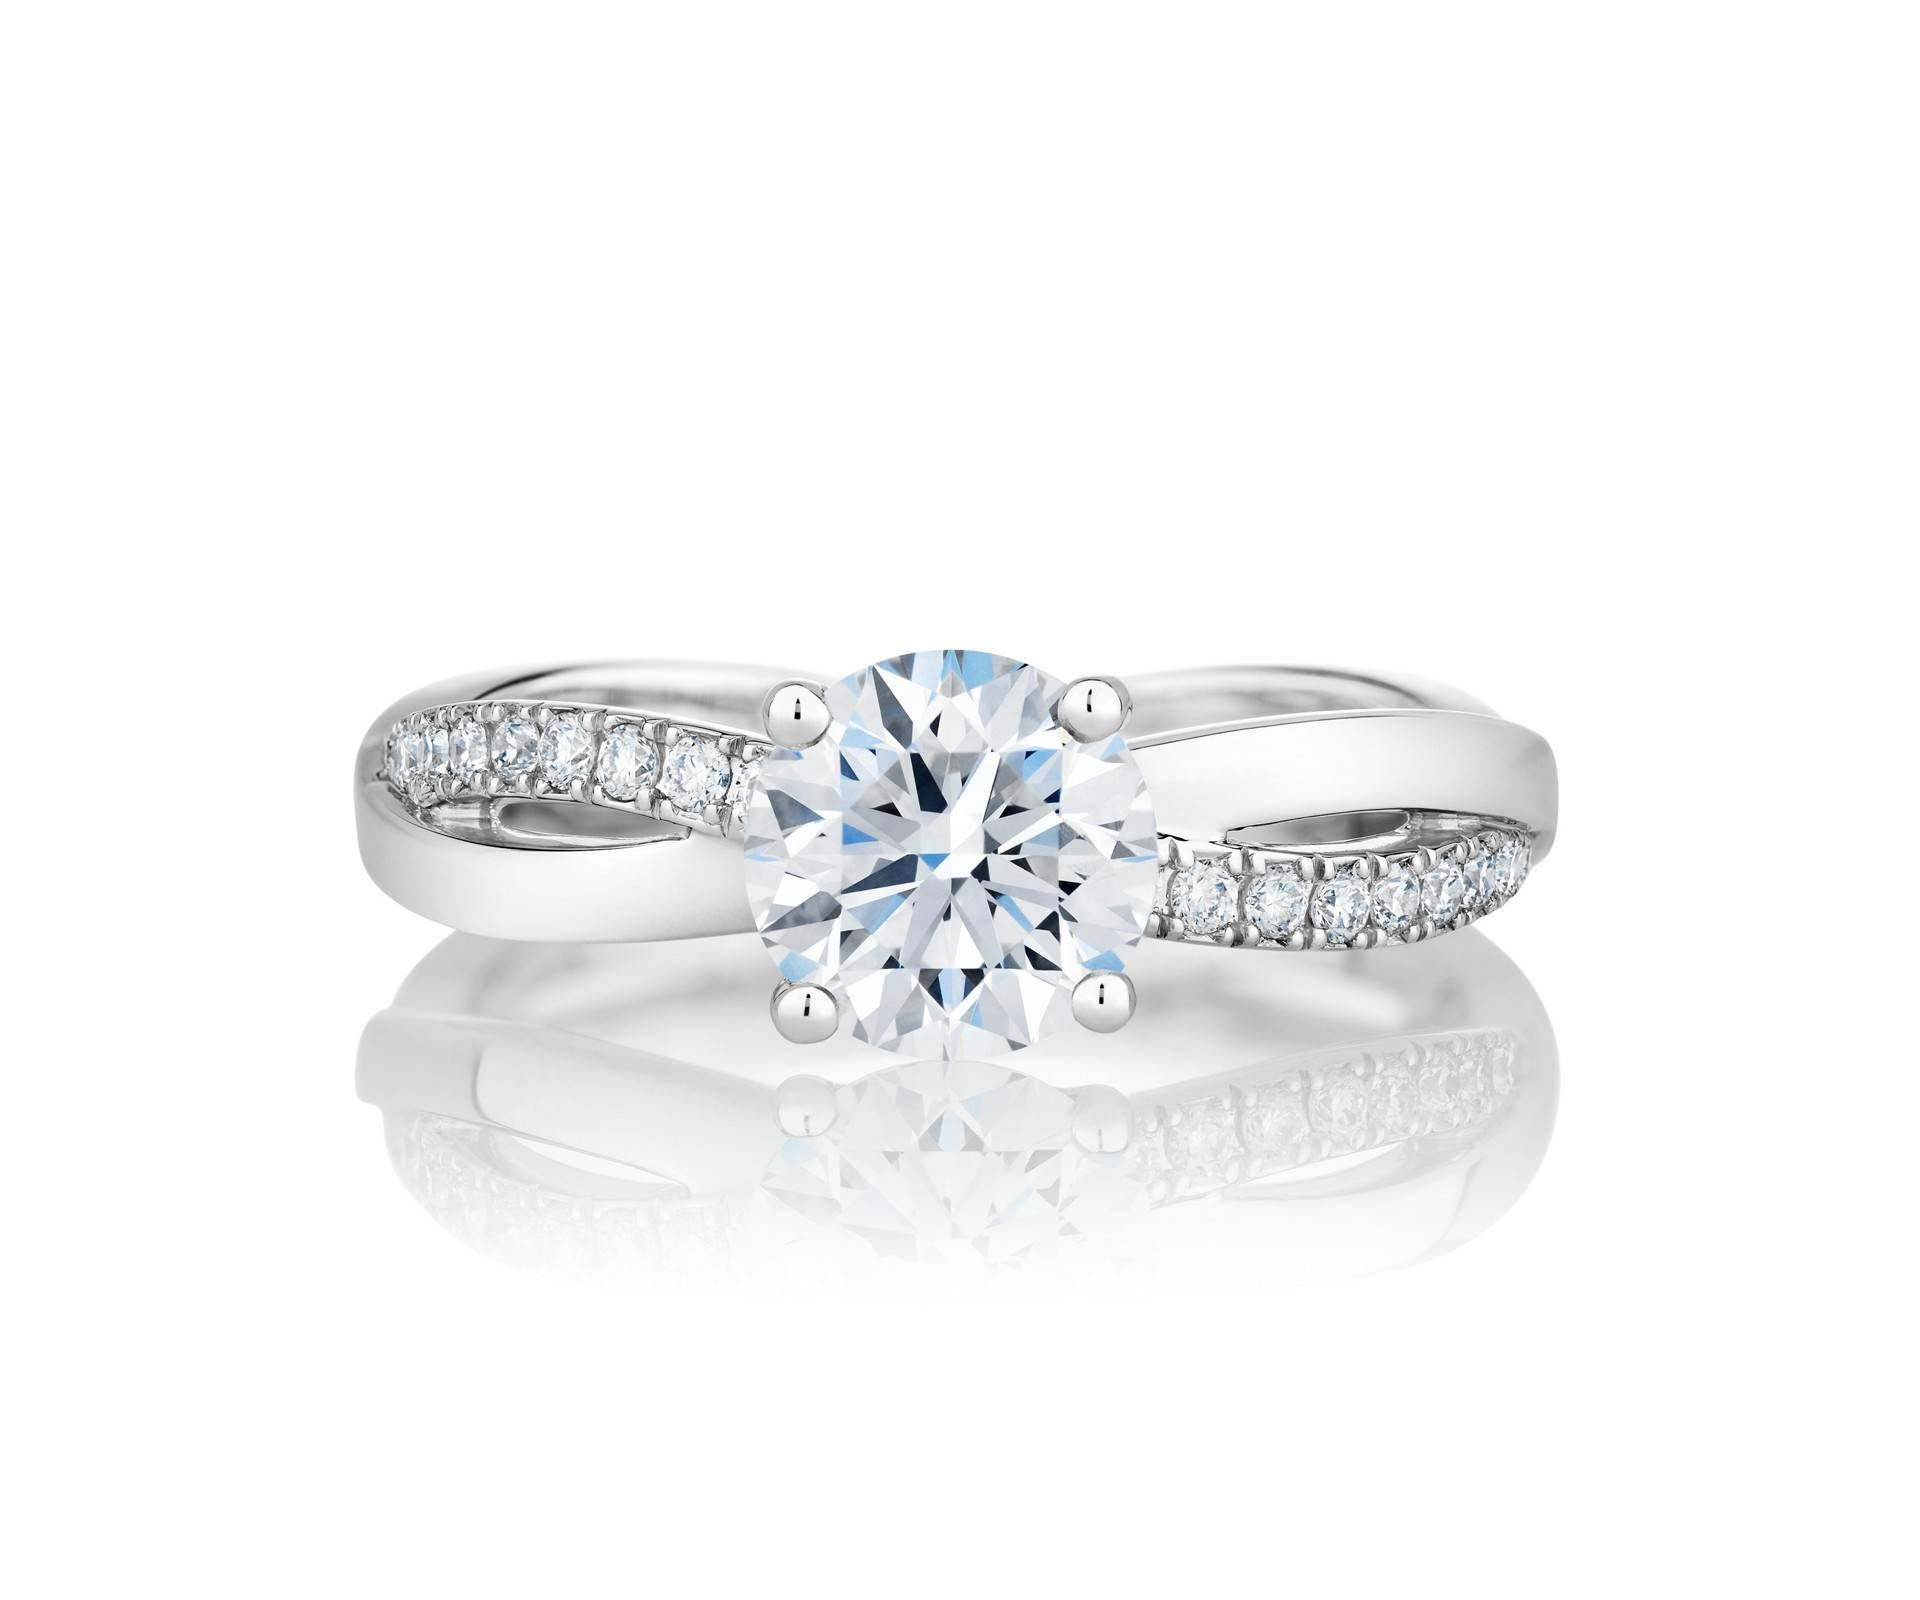 Diamond Engagement Rings & Promise Rings | De Beers Pertaining To Solitare Diamond Engagement Rings (Gallery 14 of 15)